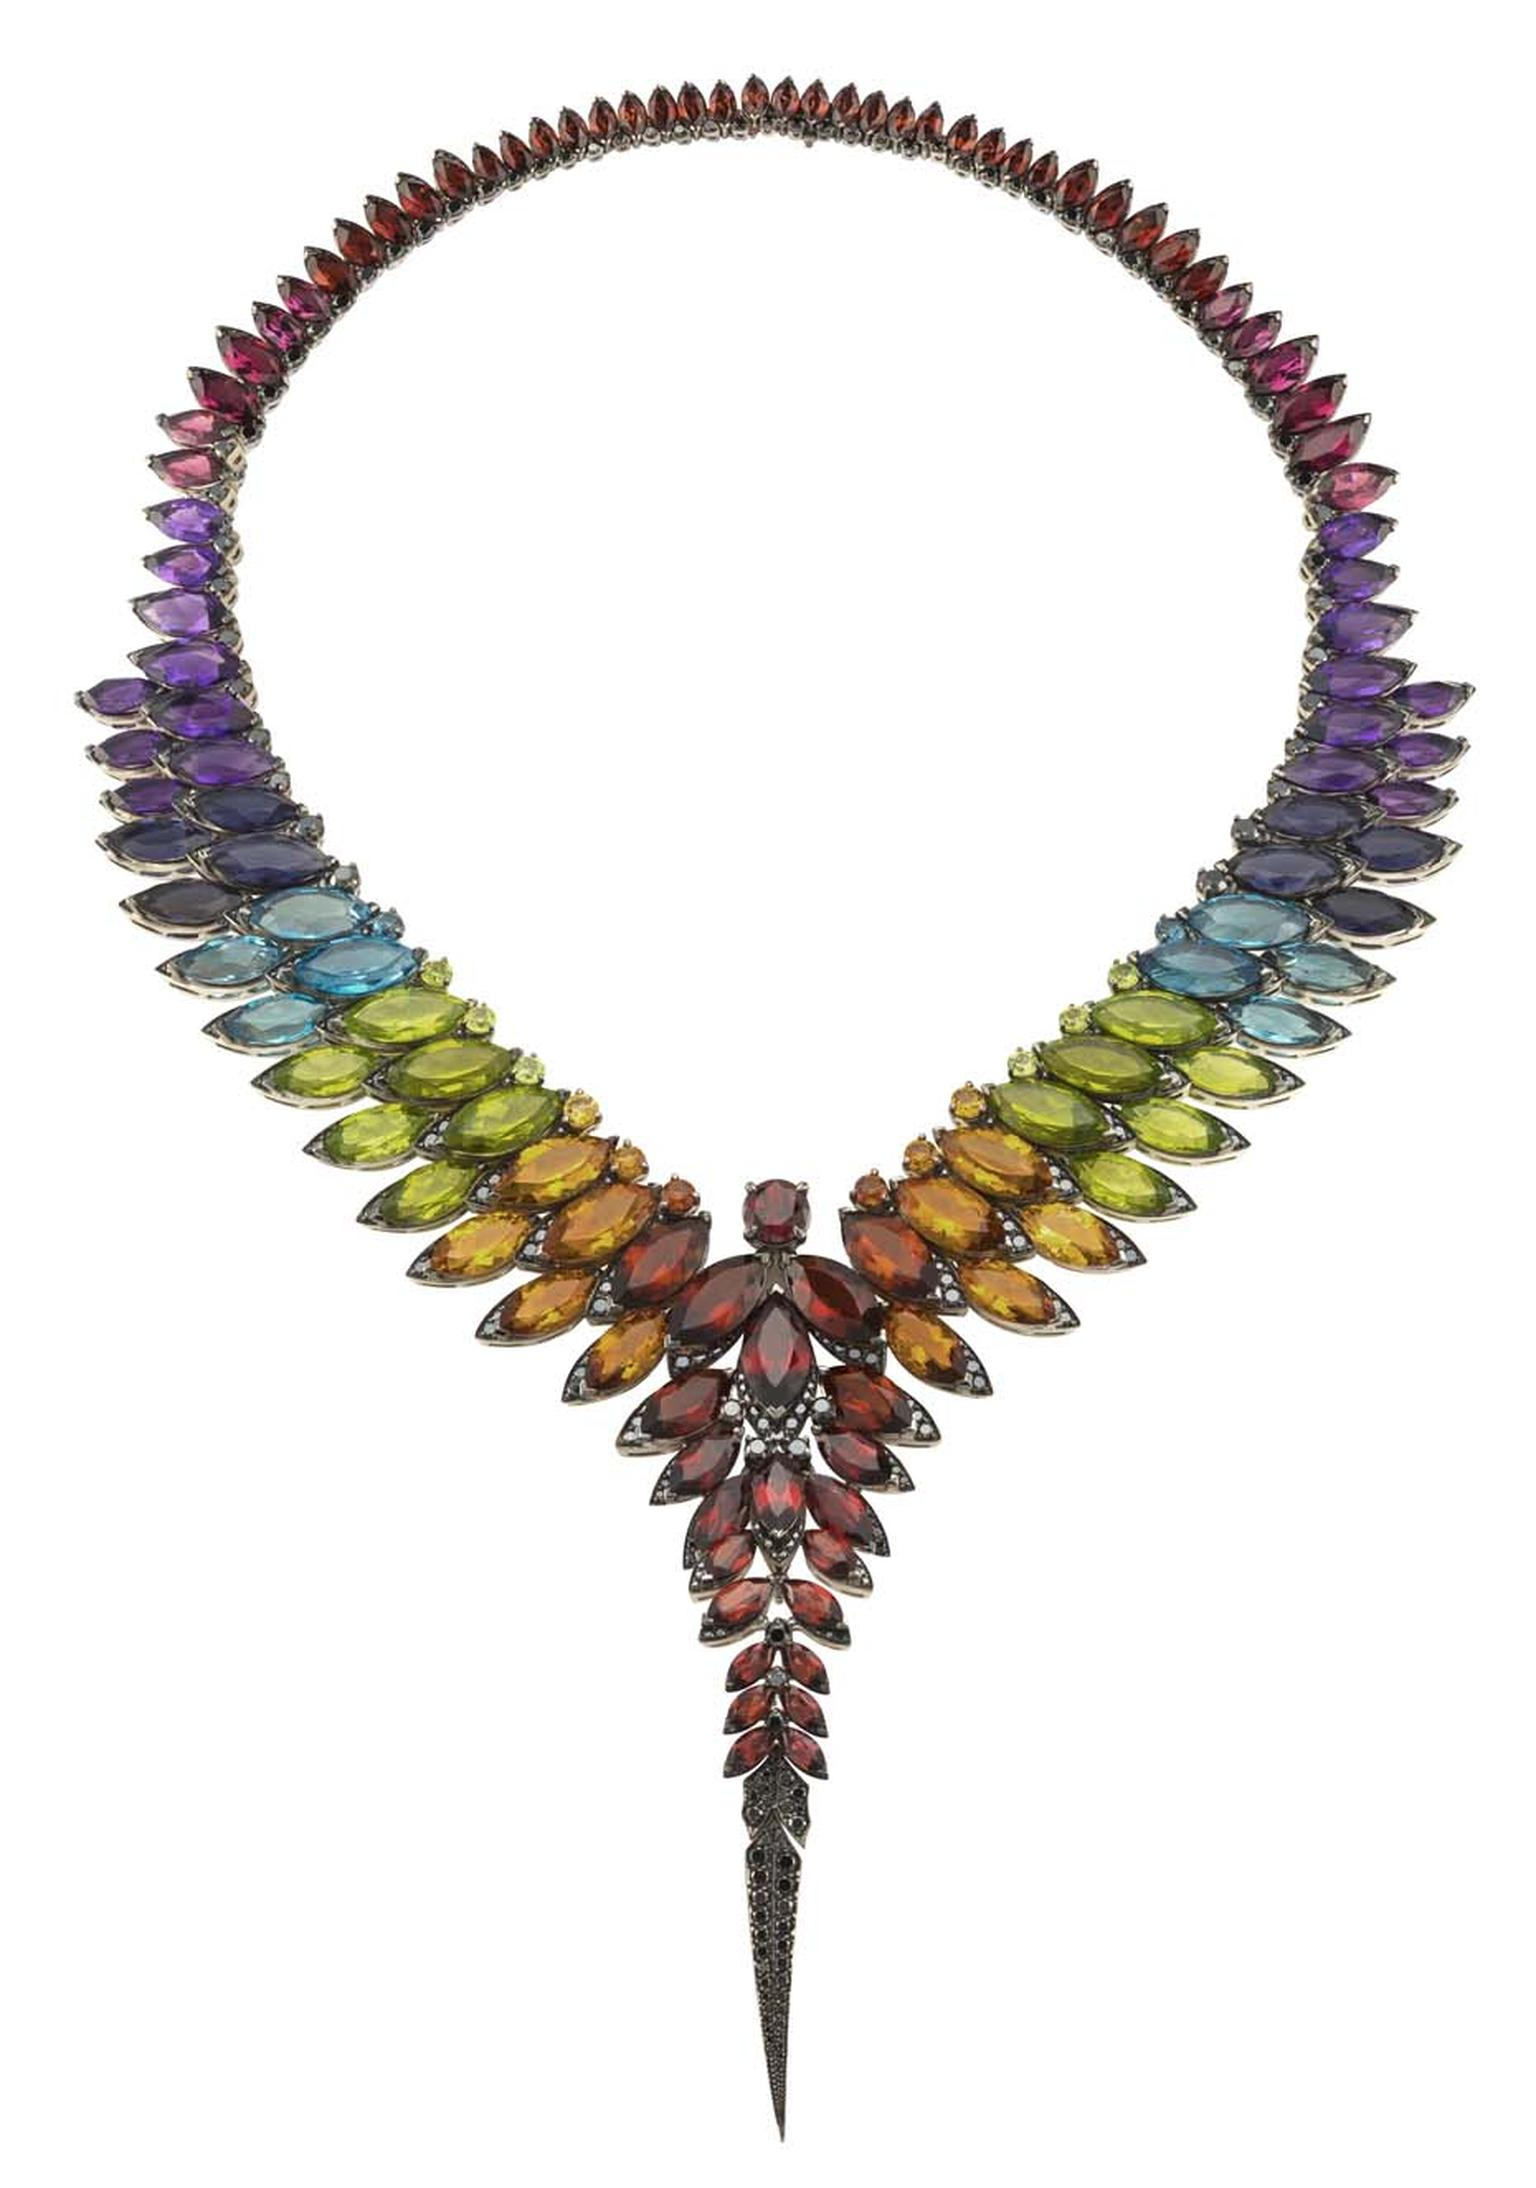 Stephen Webster Magnipheasant necklace with amethyst, pink tourmaline, red garnet, blue topaz, peridot and citrine